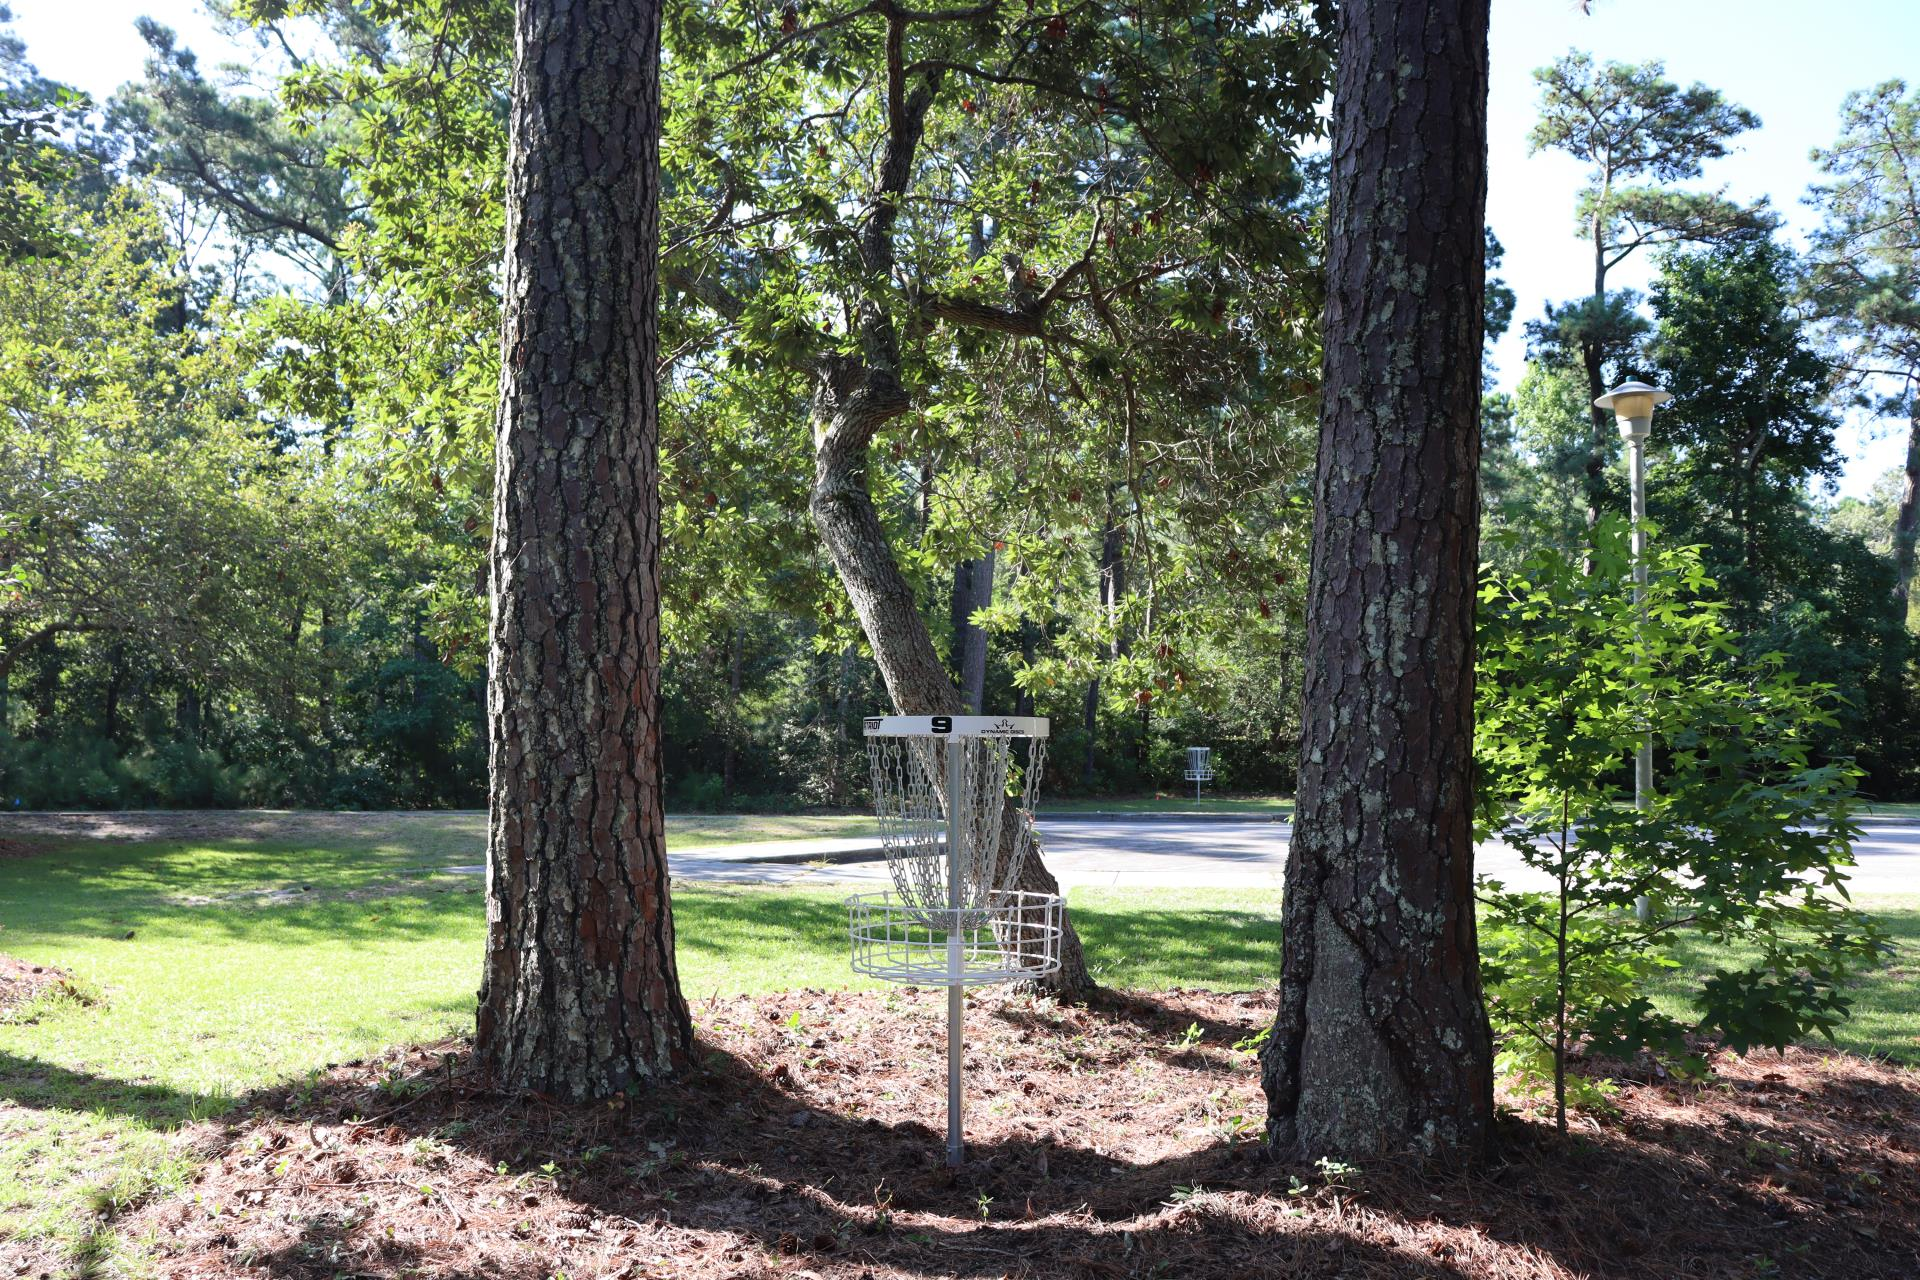 The basket at Hole 9 tucked between two trees at Ace Run.